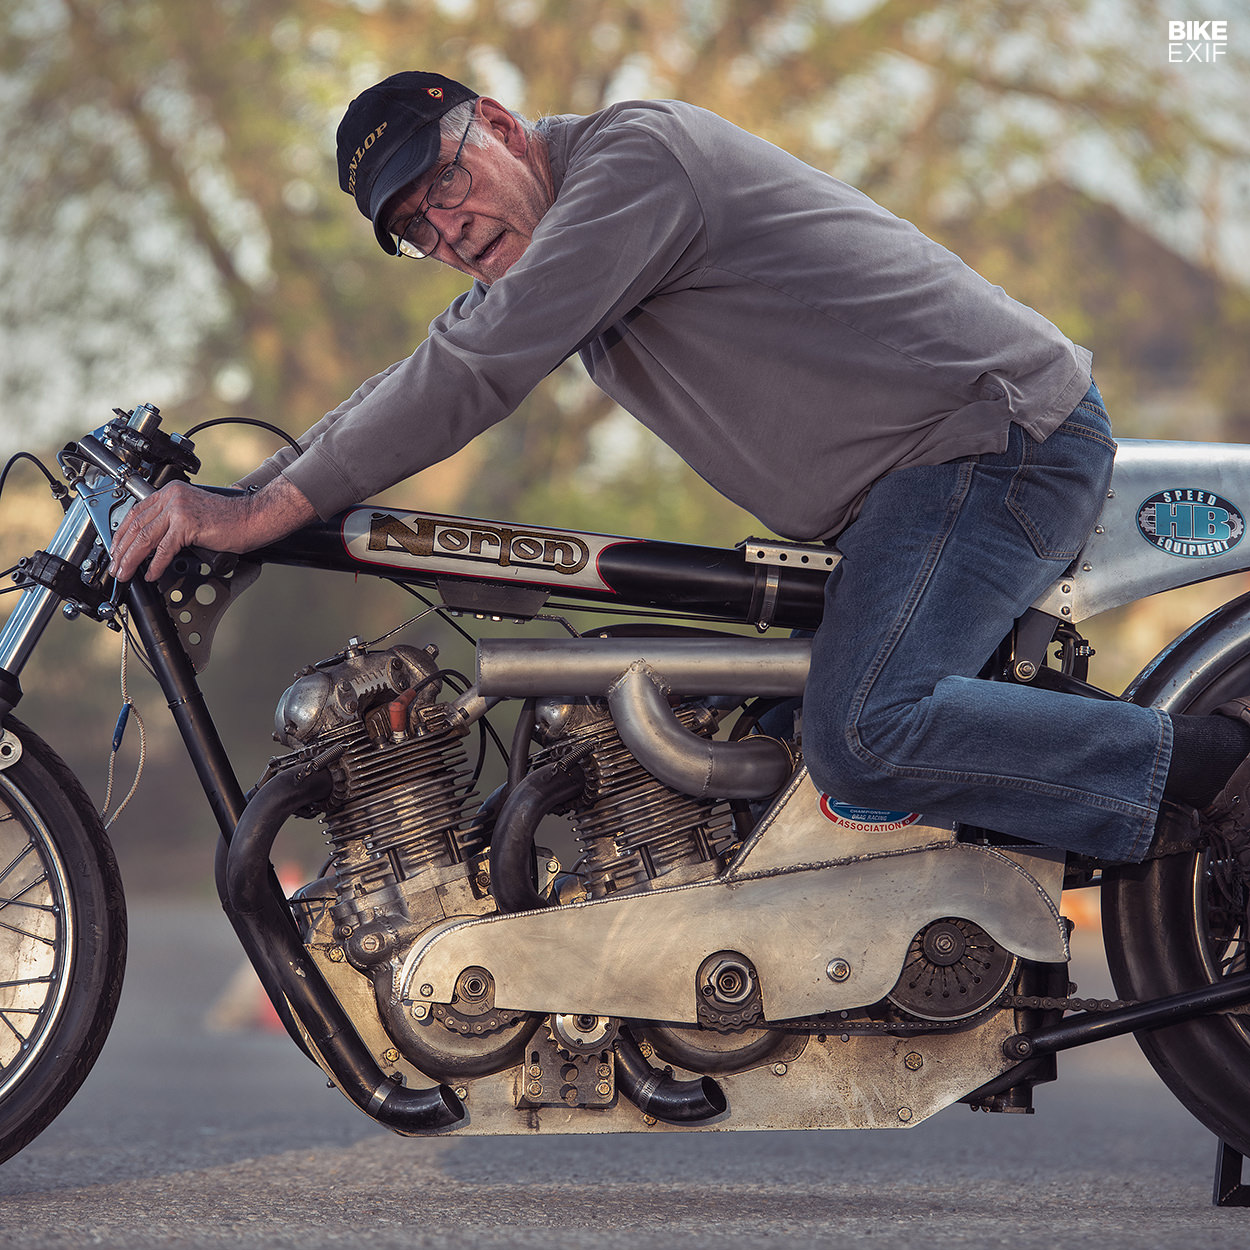 Herb Becker on his supercharged twin-engine Norton drag bike